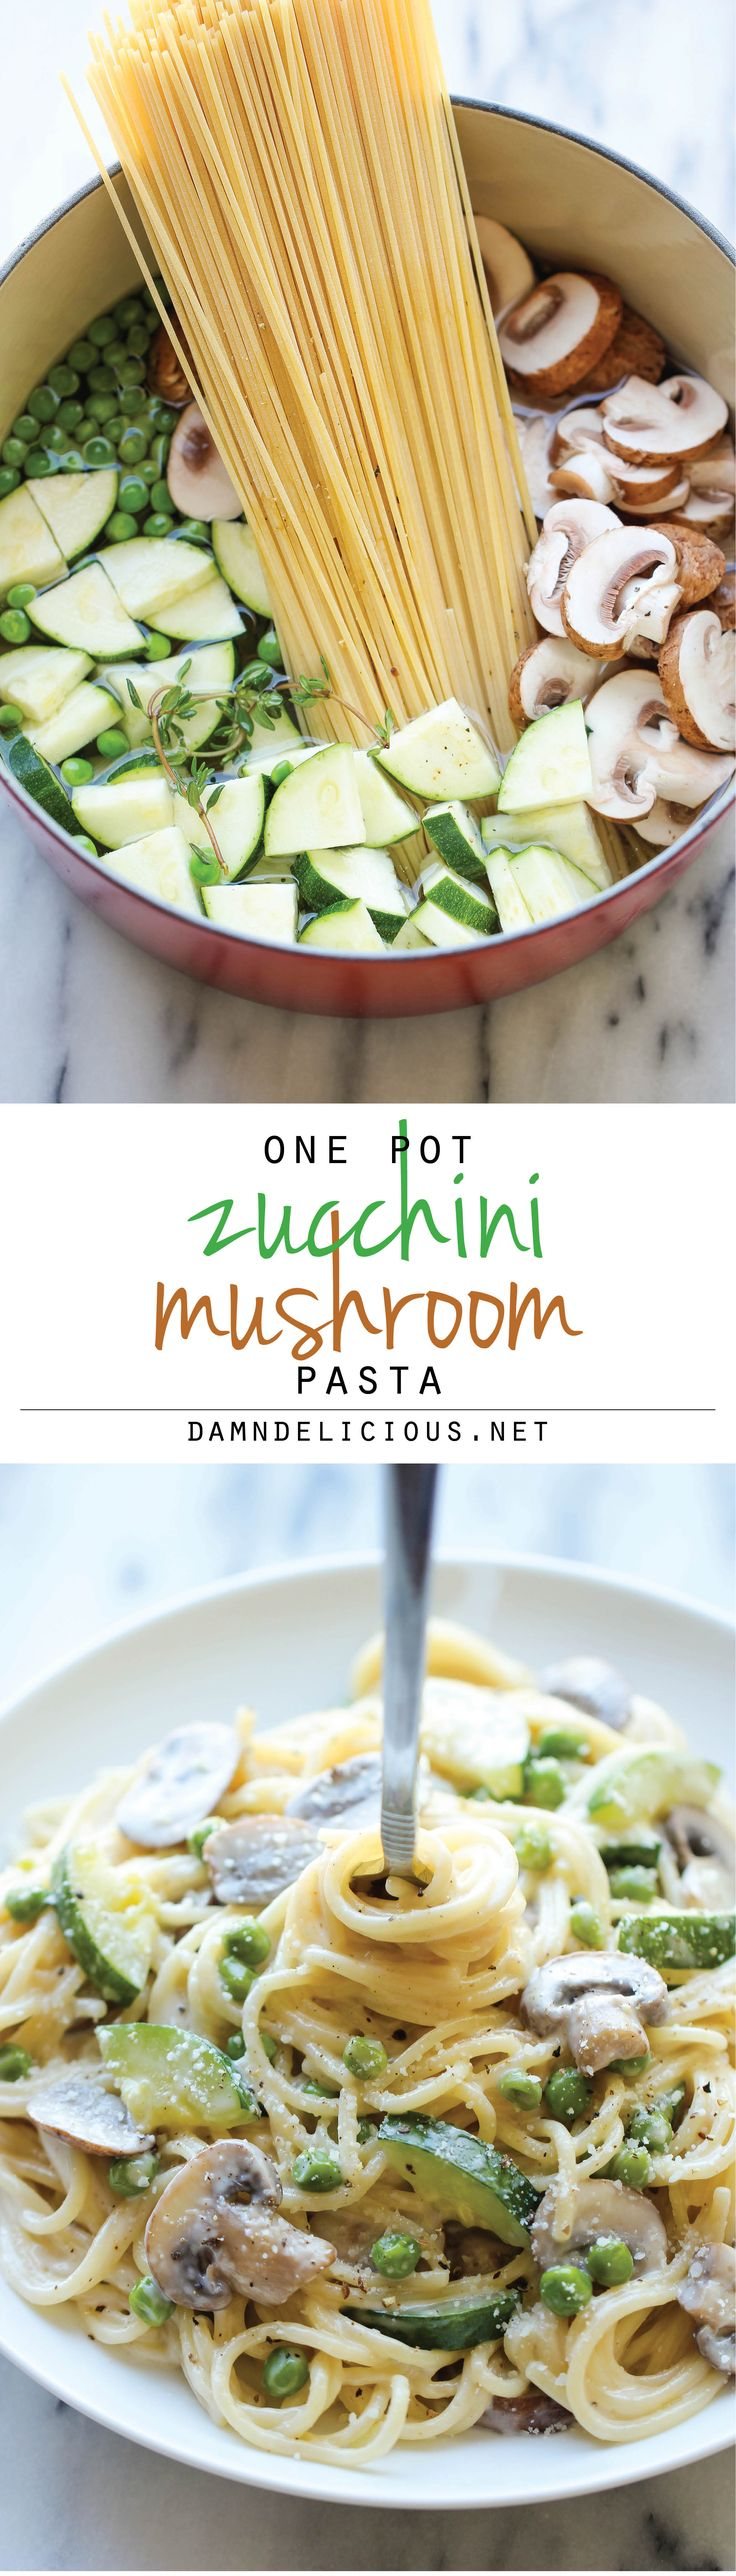 One Pot Zucchini Mushroom Pasta - A creamy hearty pasta dish that you can make in just 20 min. Even the pasta gets cooked in the pot!